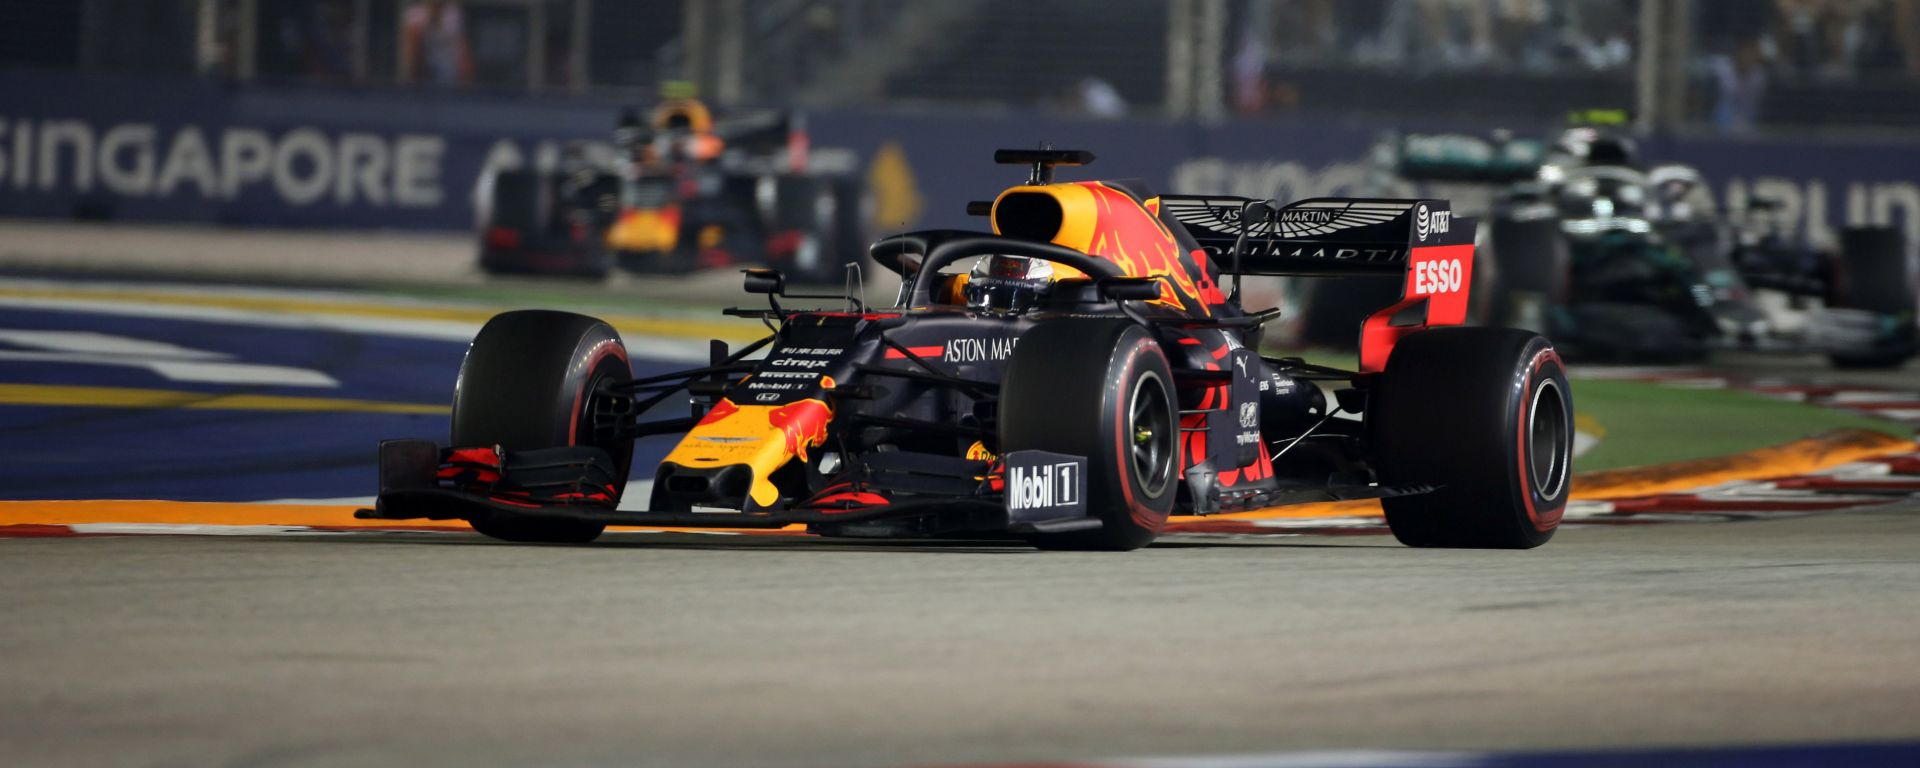 F1 GP Singapore 2019, Max Verstappen in pista